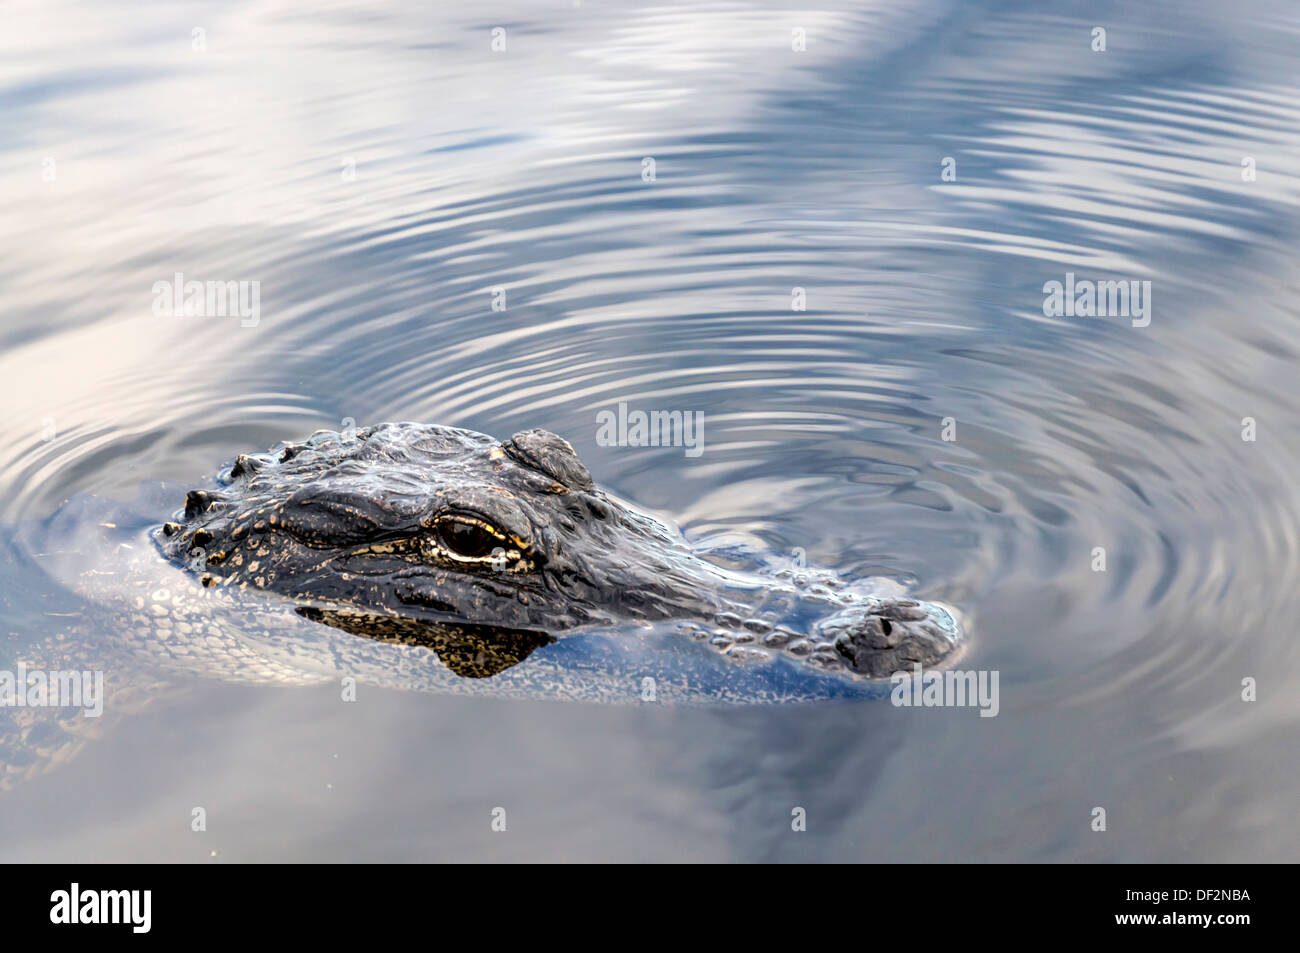 Small American alligator (Alligator mississippiensis), also known as gator, swimming with eyes and nostrils just above water. - Stock Image